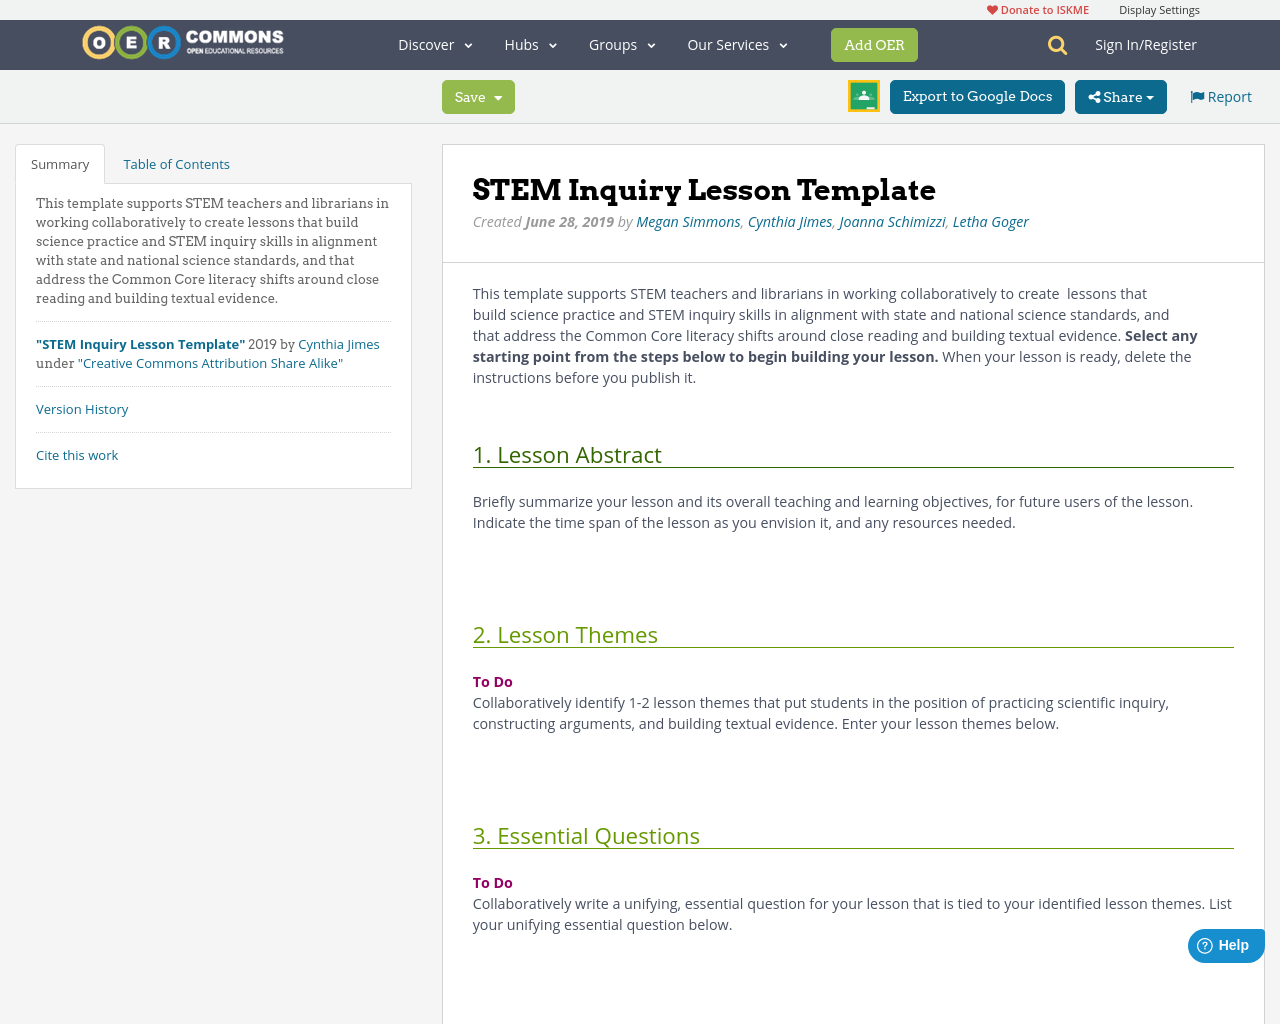 STEM Inquiry Lesson Template | OER Commons